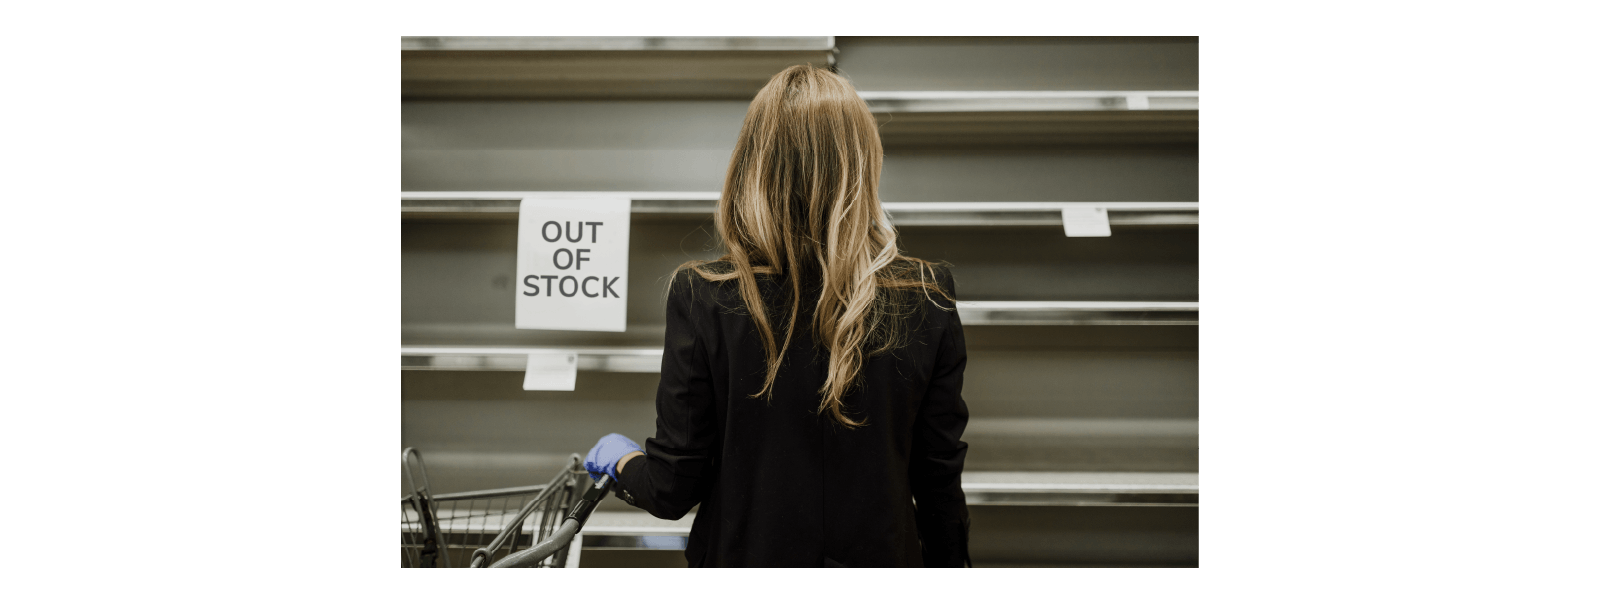 Lady looking at 'Out of Stock' shelves